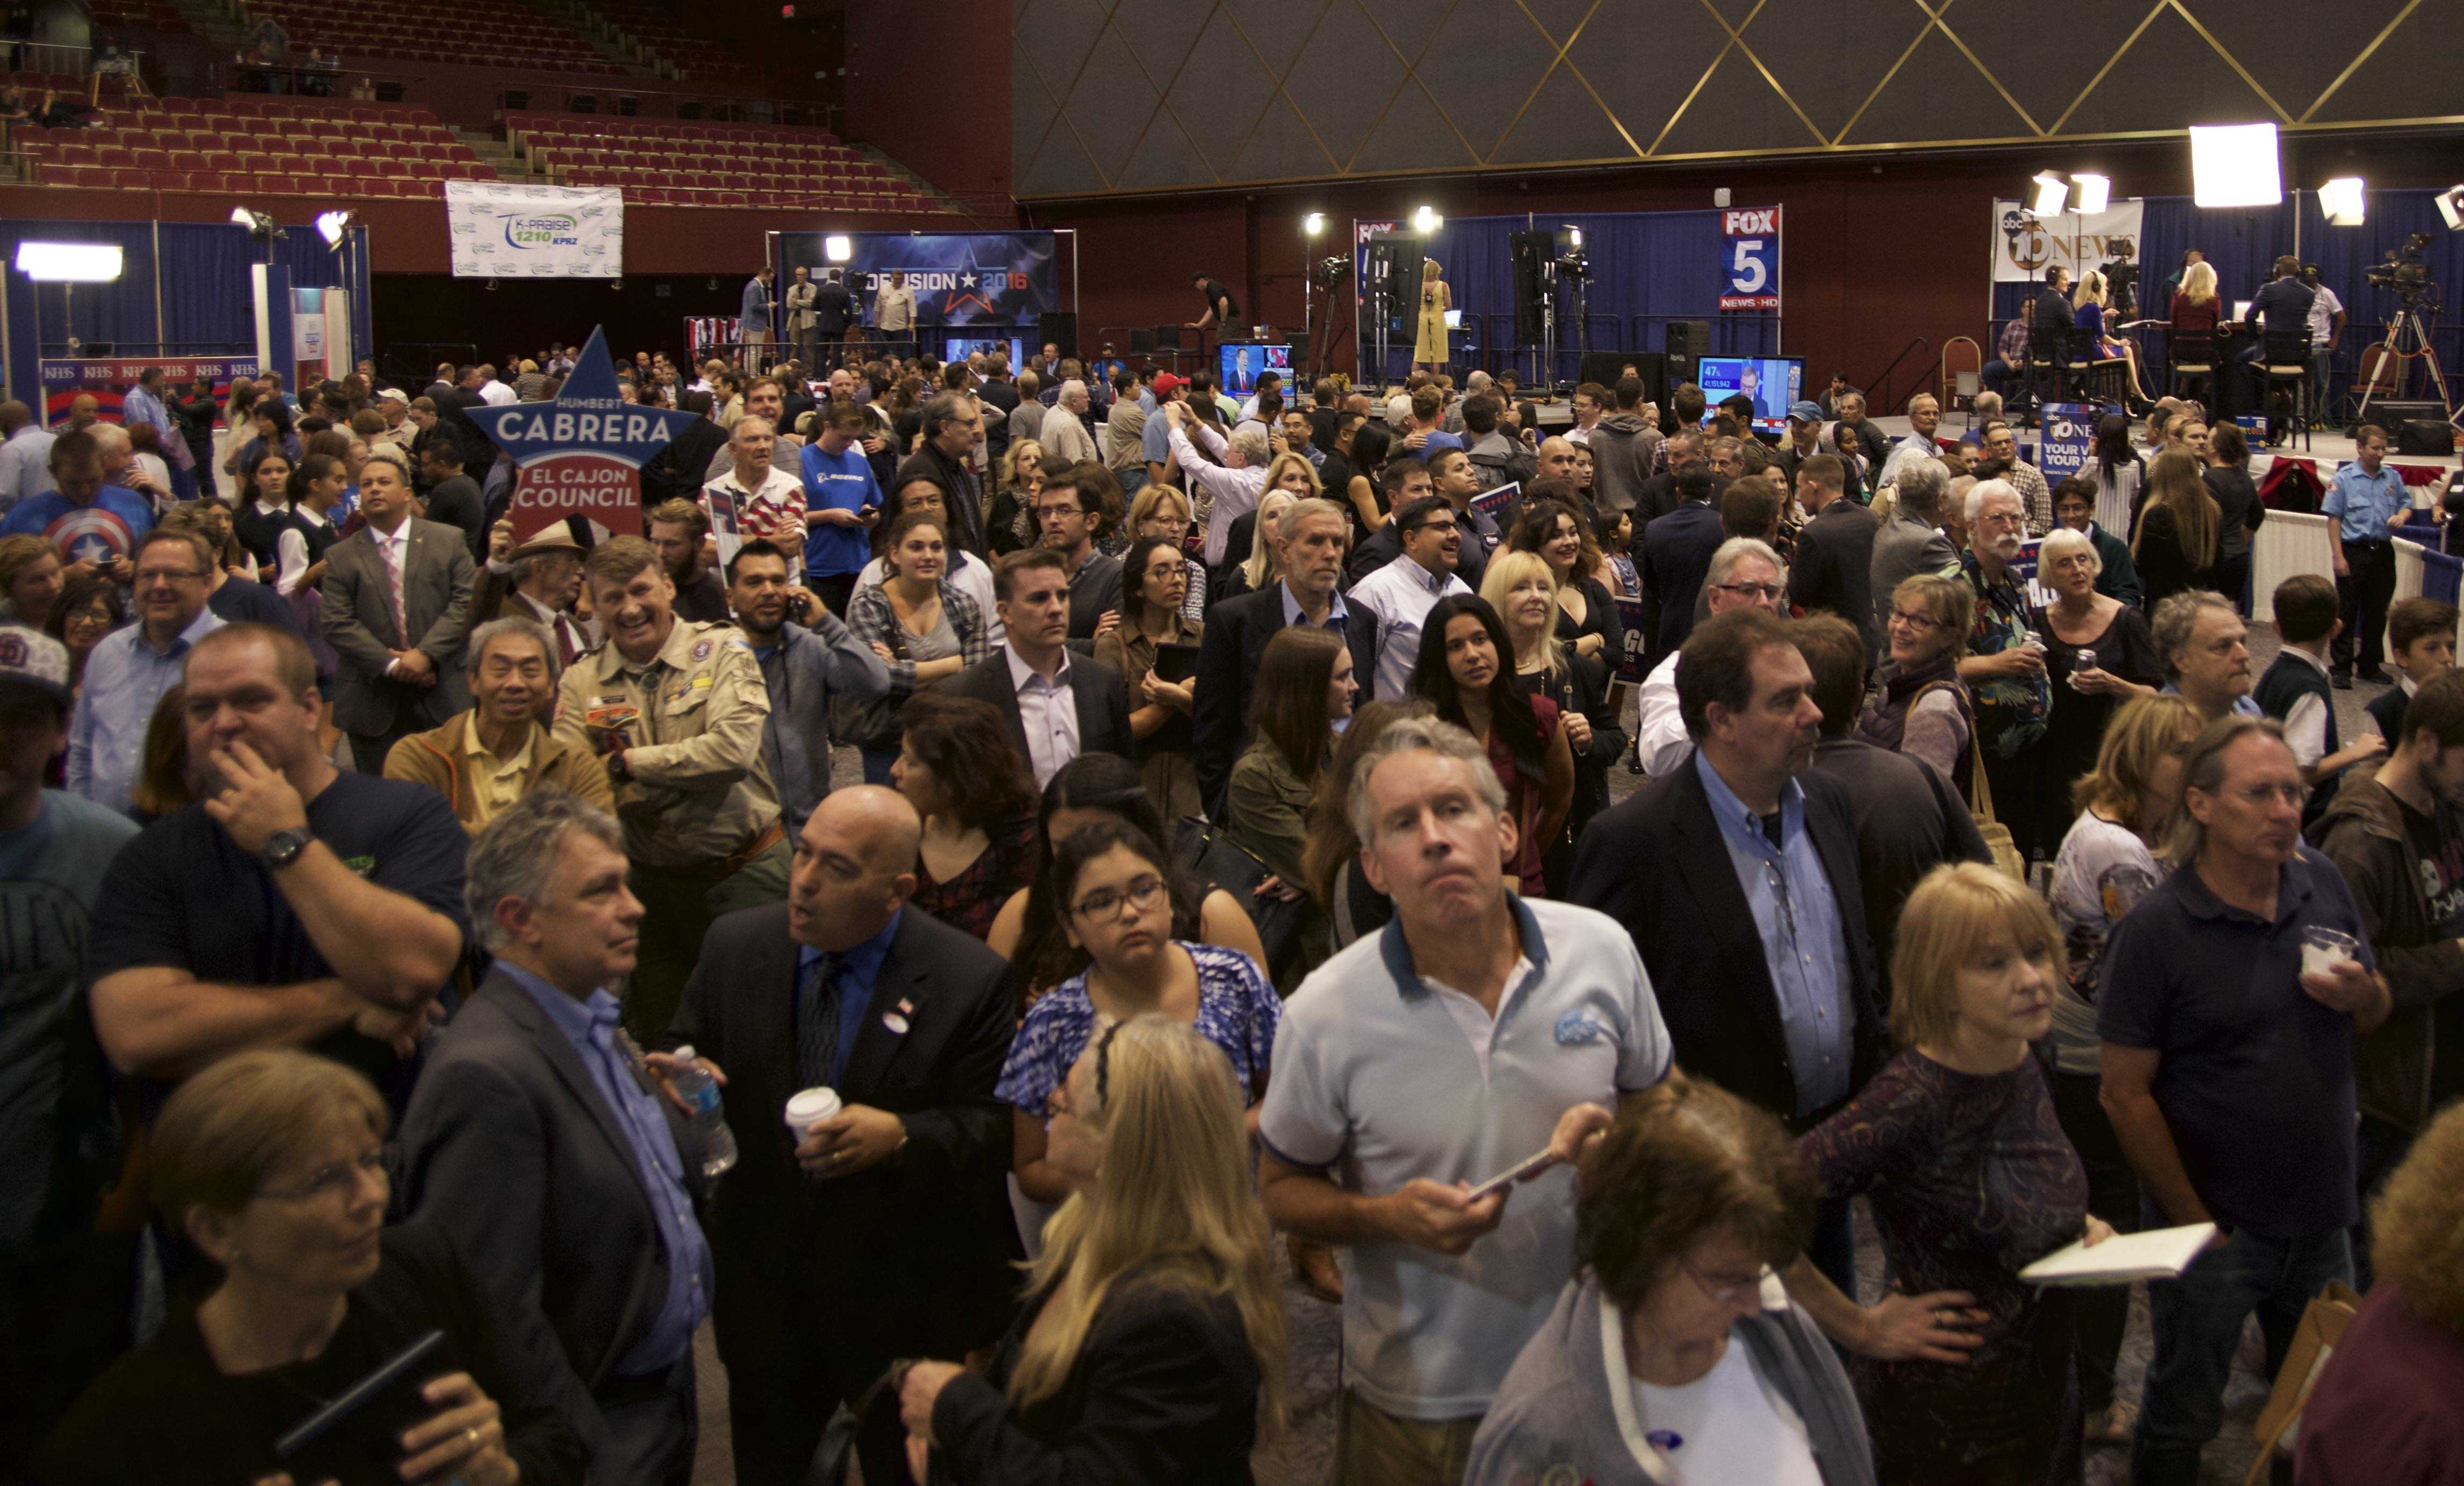 Spectators watching U.S. election results at Golden Hall in downtown San Diego. Nov. 8. Photo credit: Thomas Chesy